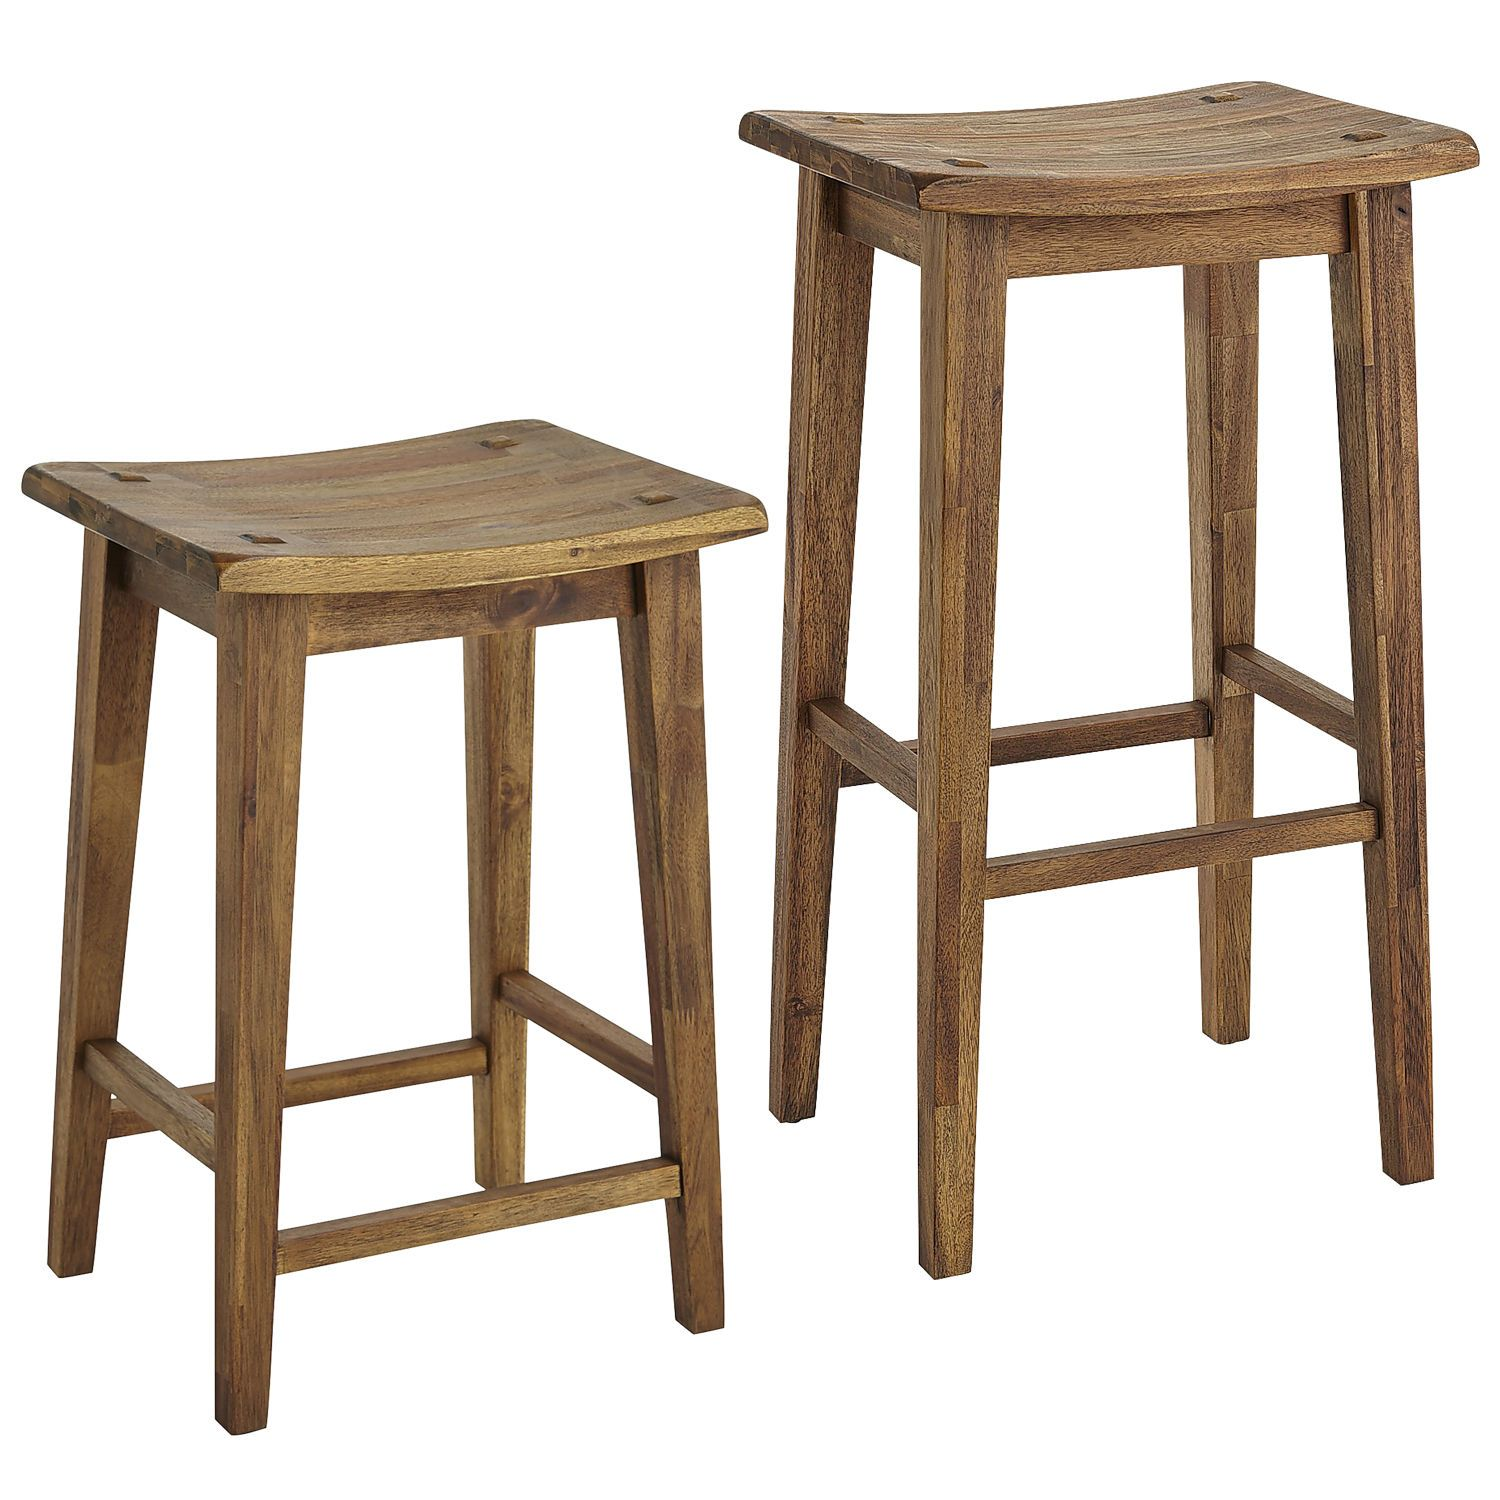 Lawson Bar Counter Stool Java Pier 1 Imports Counter